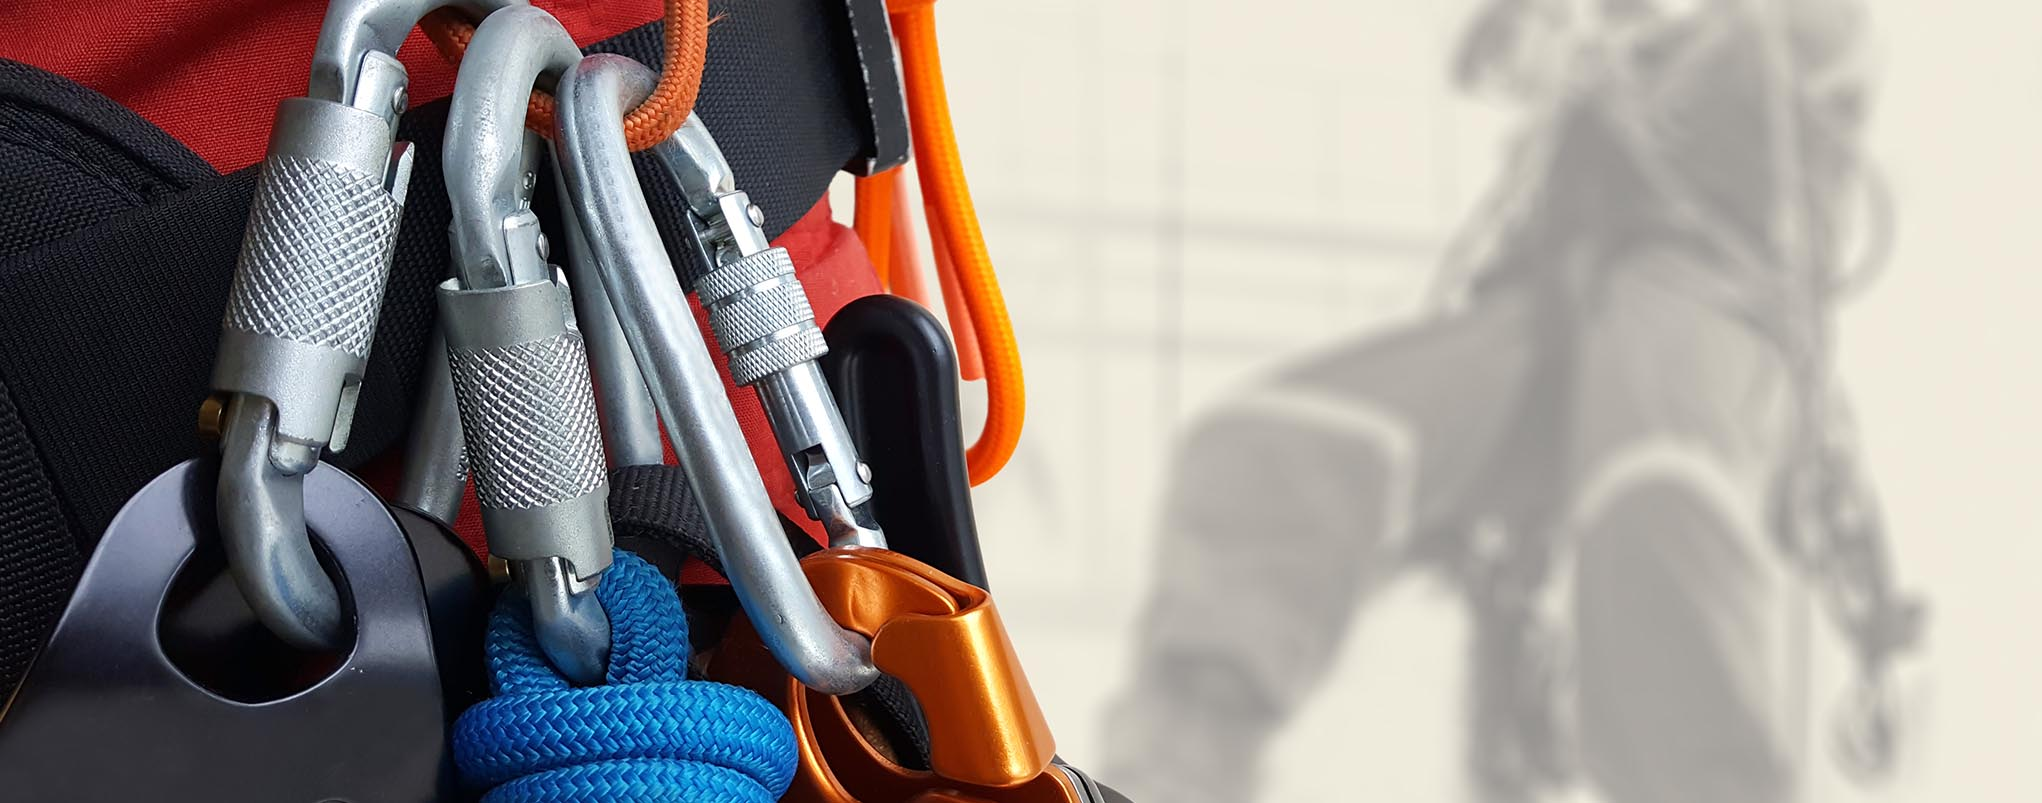 rope access insurance